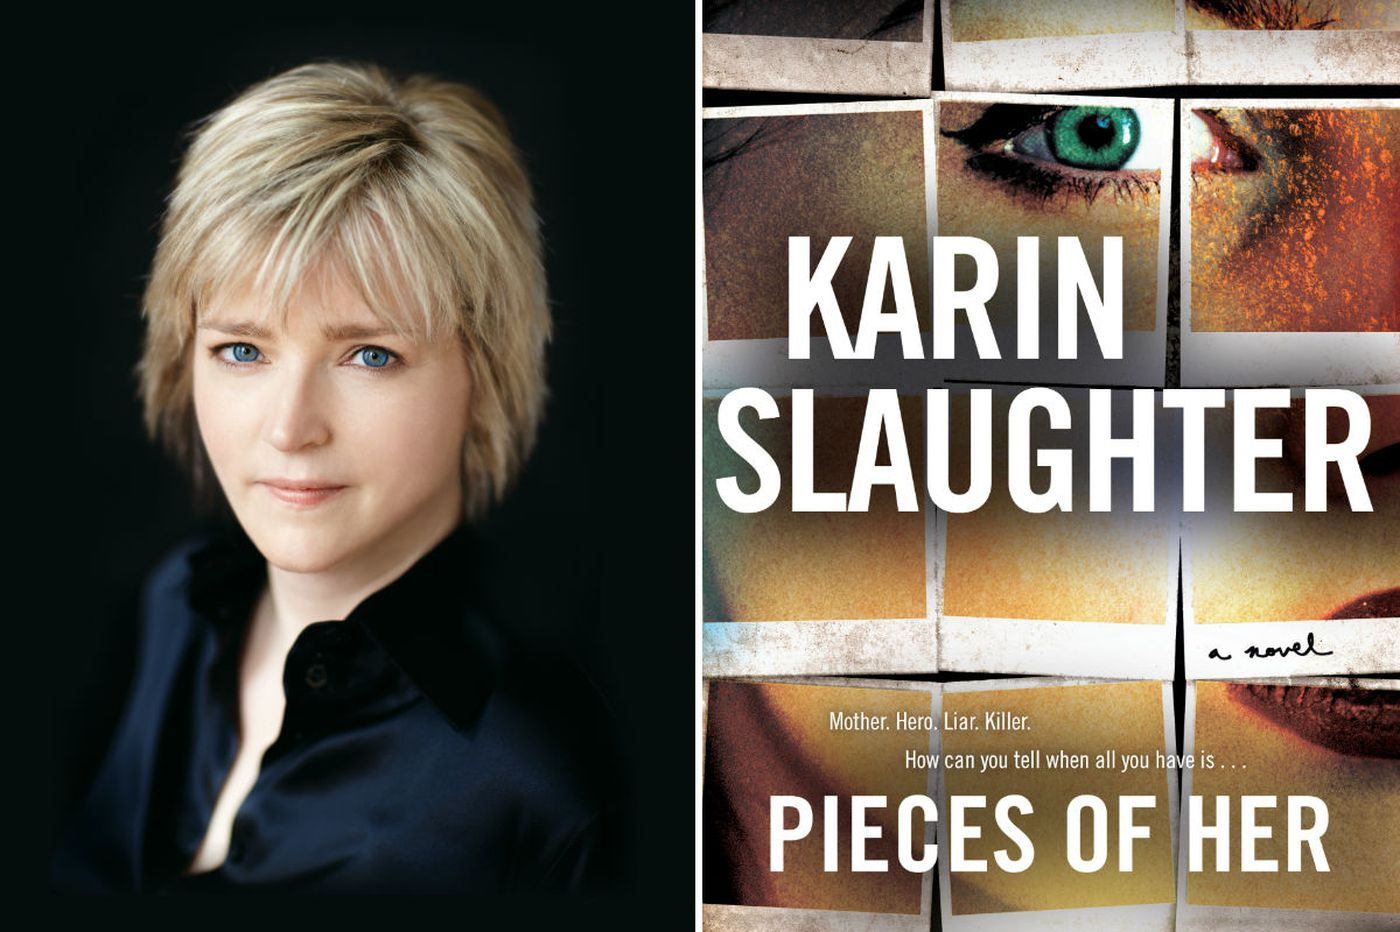 Karin Slaughter's 'Pieces of Her': Shots ring out, and a woman comes into her own